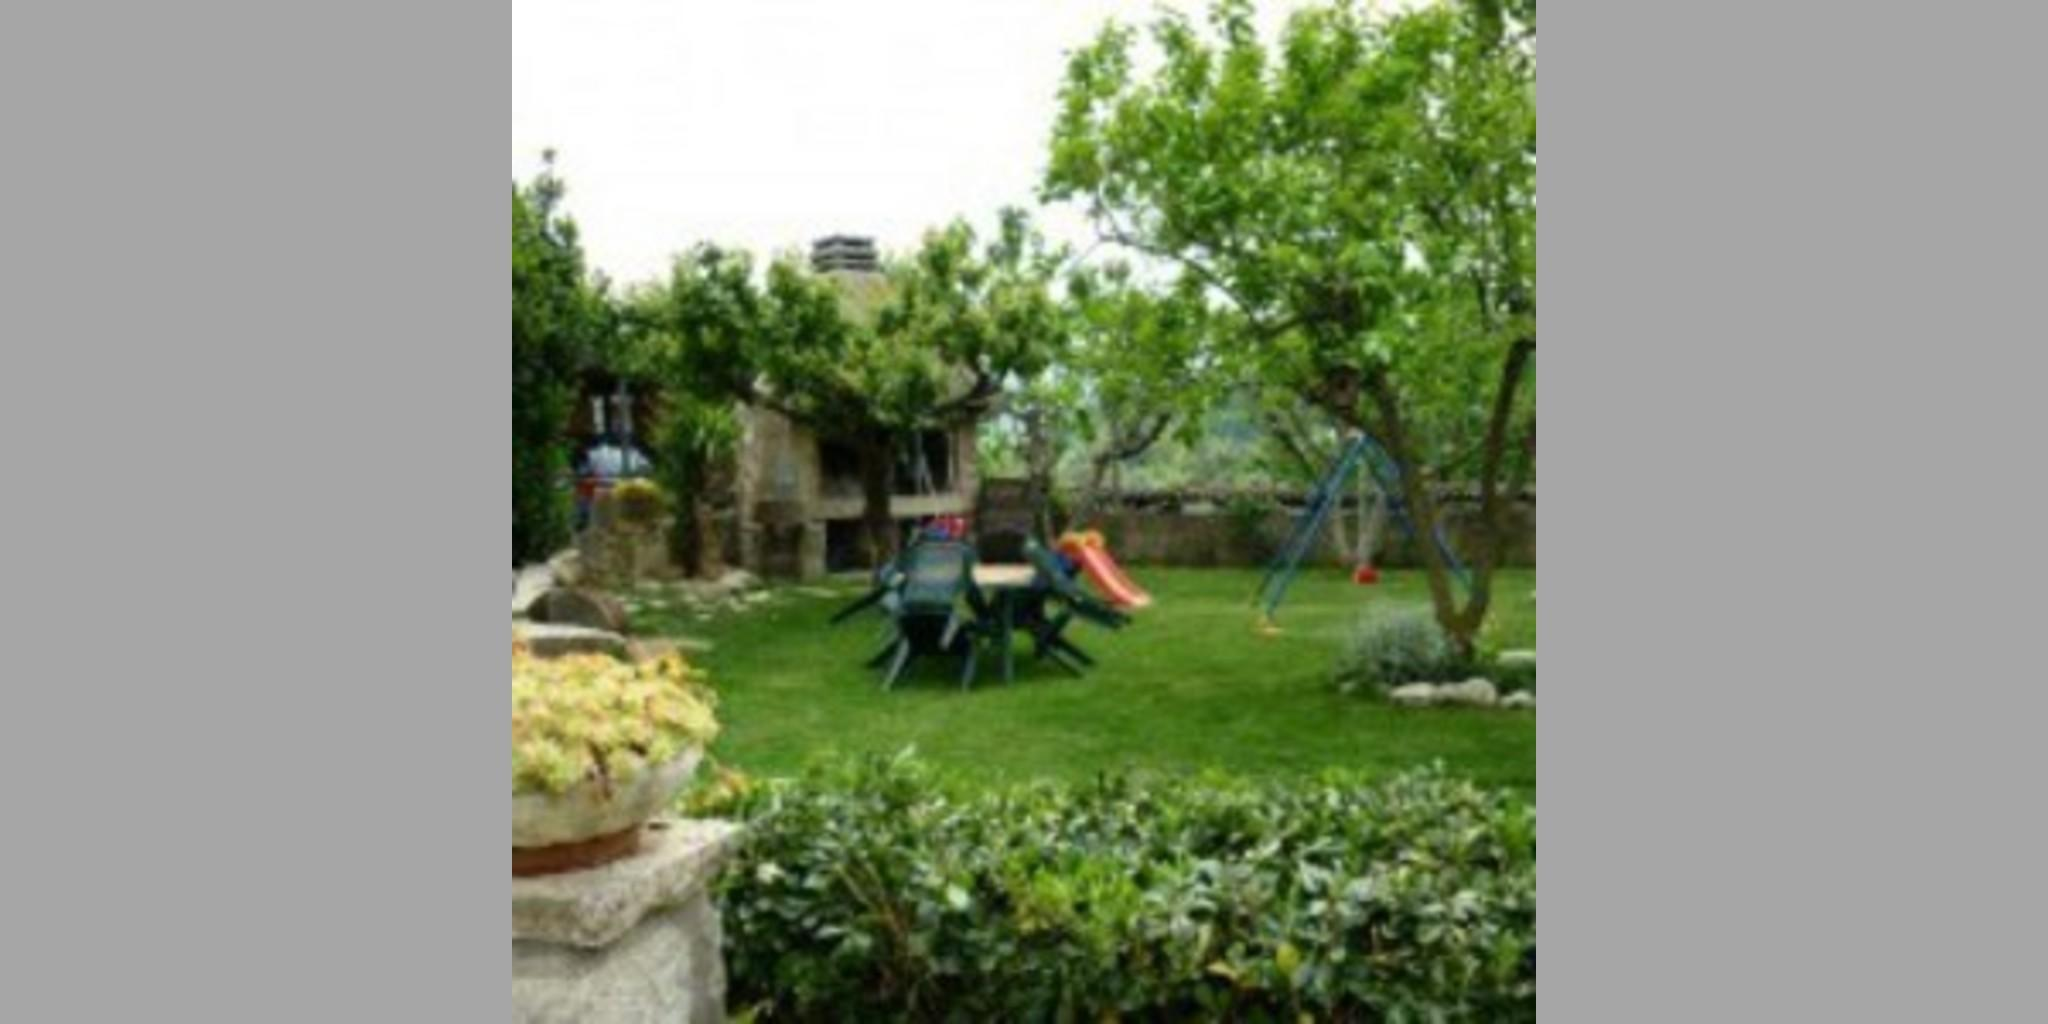 Bed & Breakfast Guardialfiera - Campobasso_Contrada Pizzica